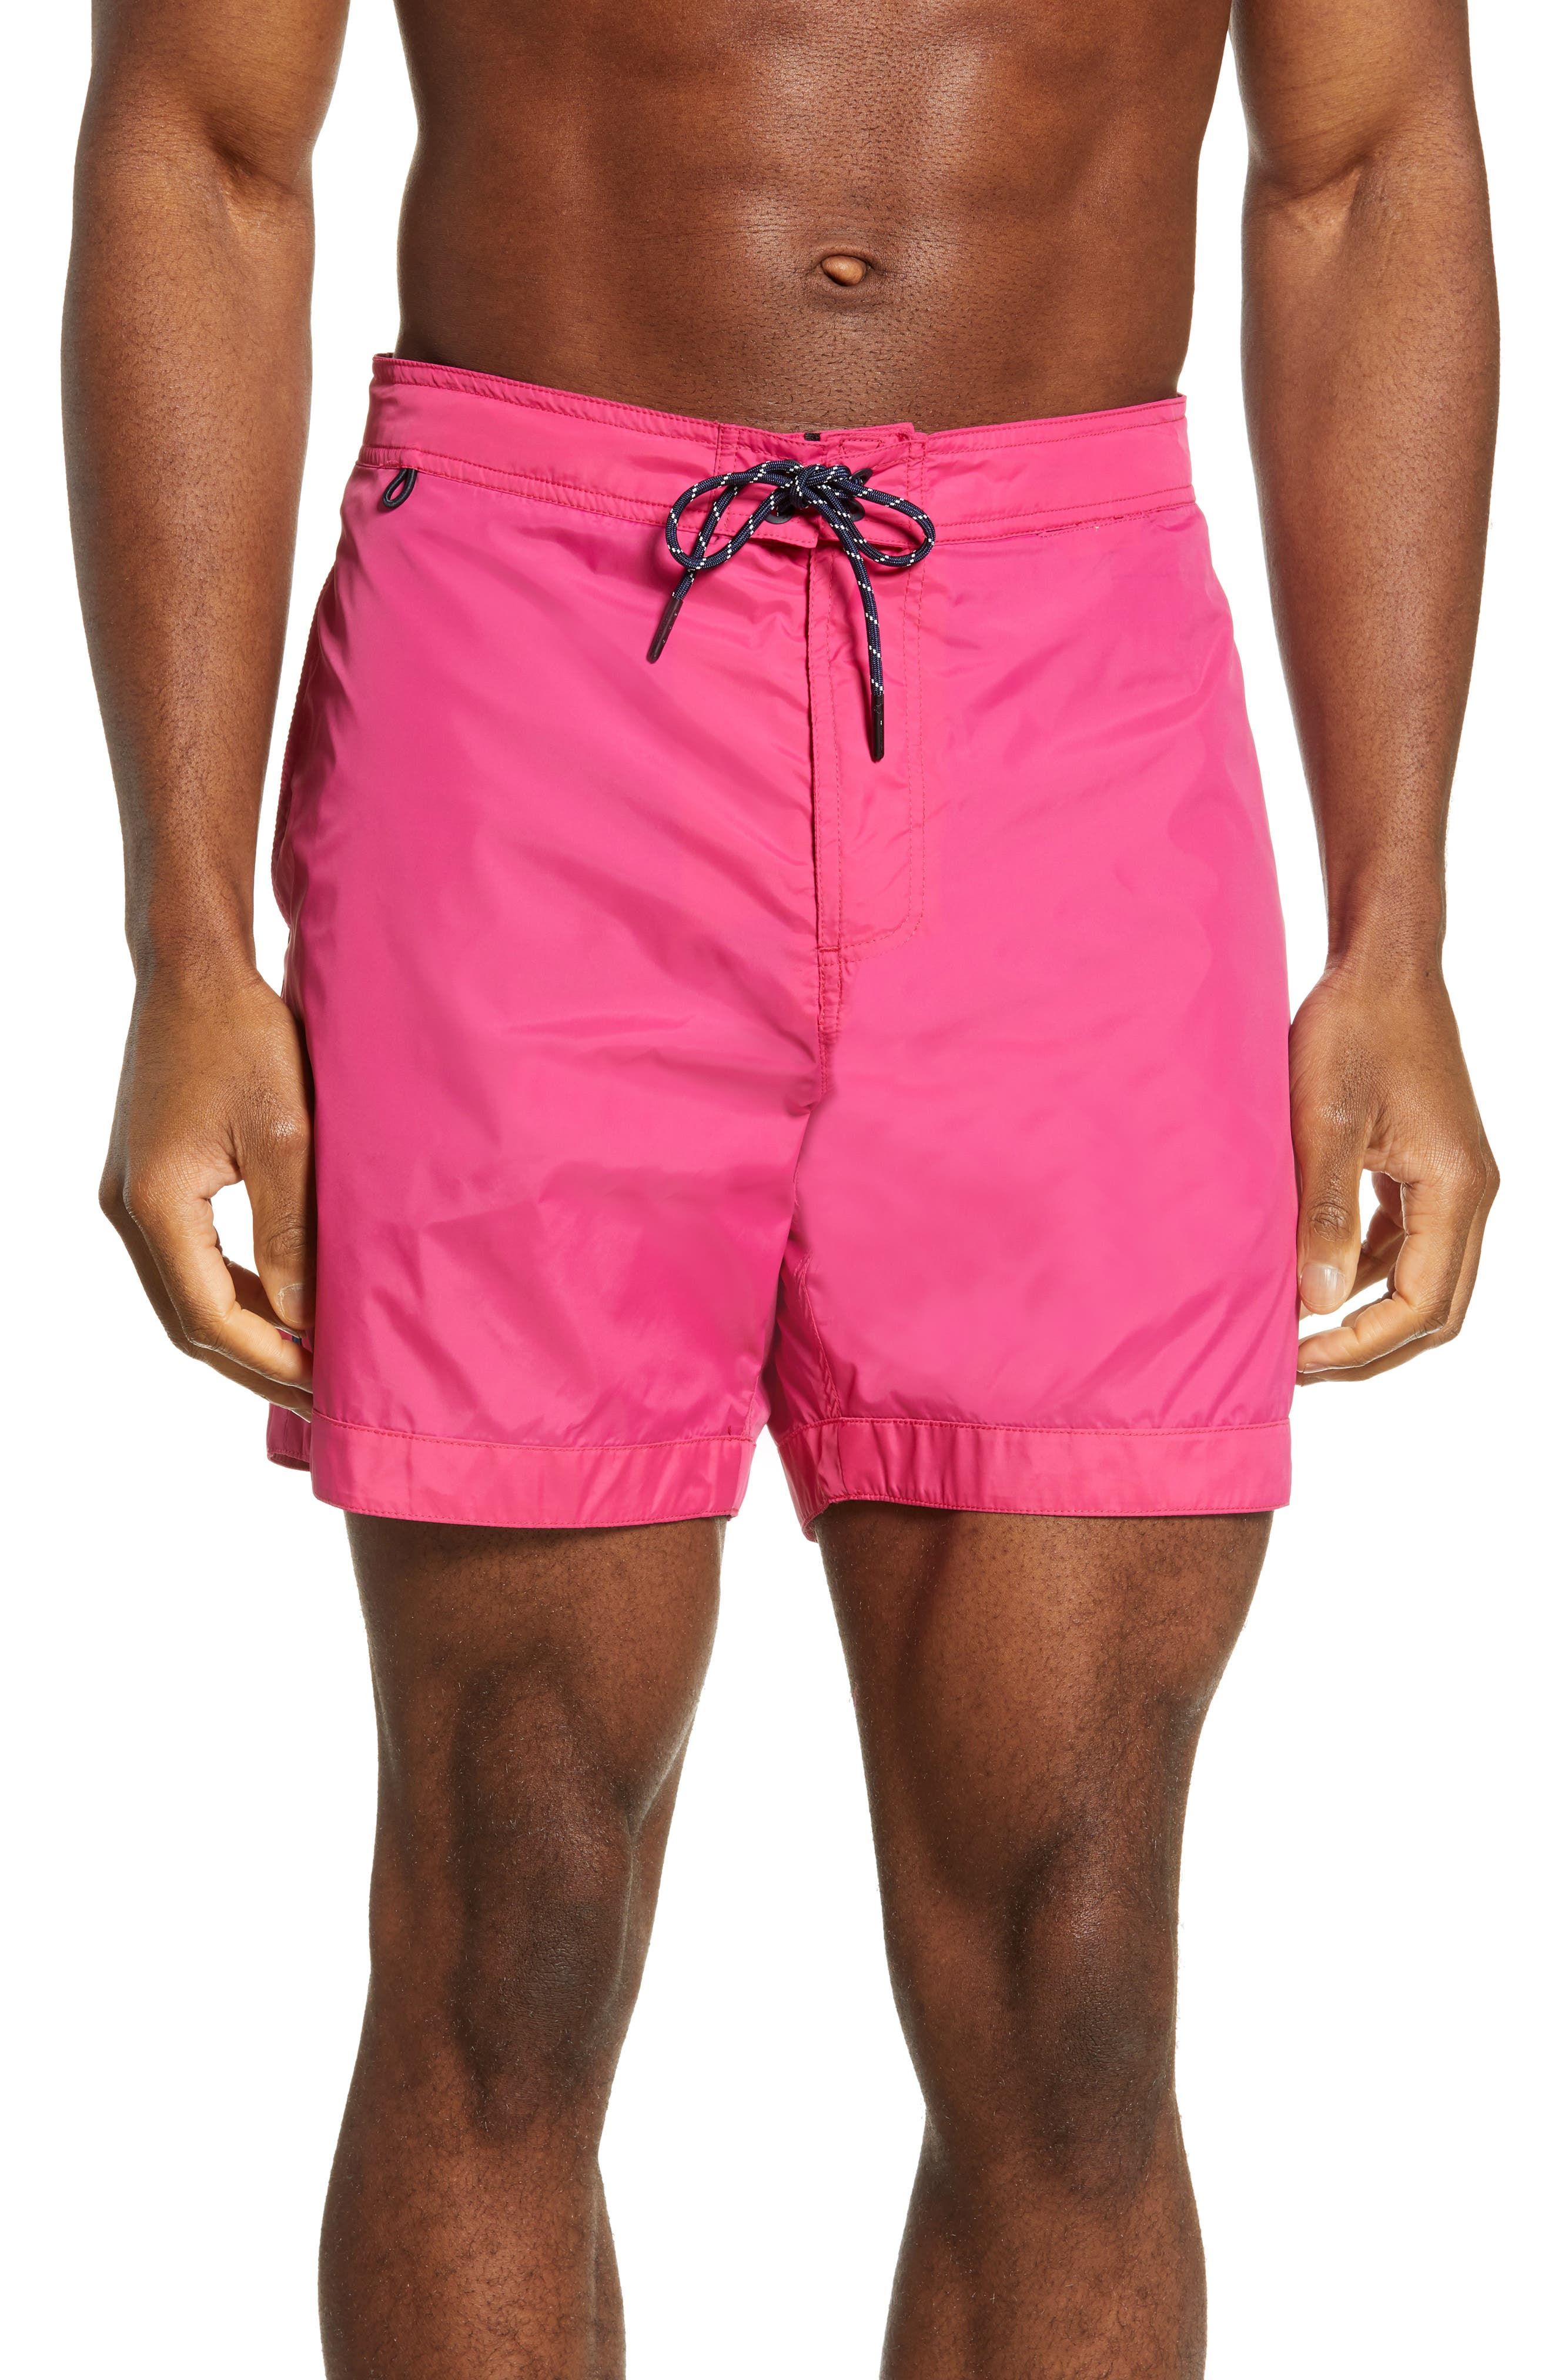 bbe4a3f58c Scotch & Soda Bermuda Bright Swim Trunks, Pink